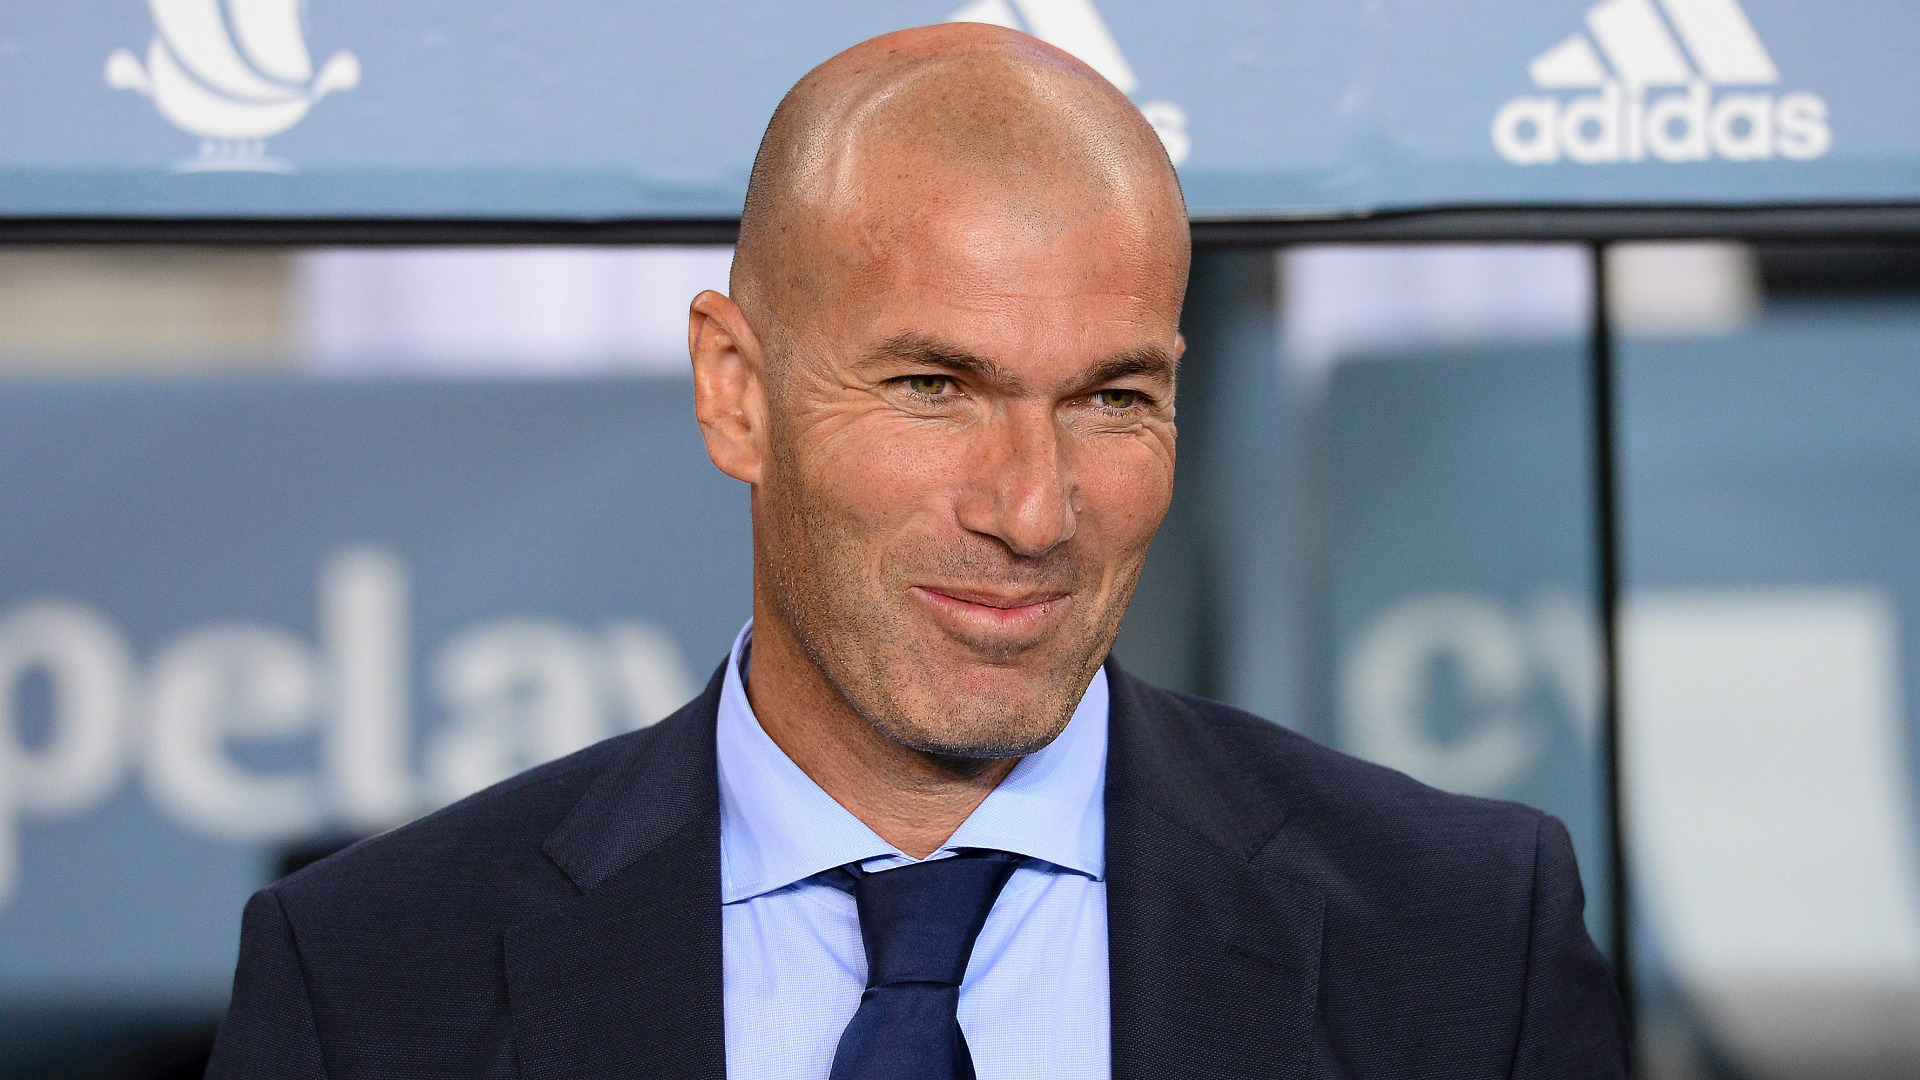 Zinedine Zidane frustrated by Cristiano Ronaldo's hefty punishment